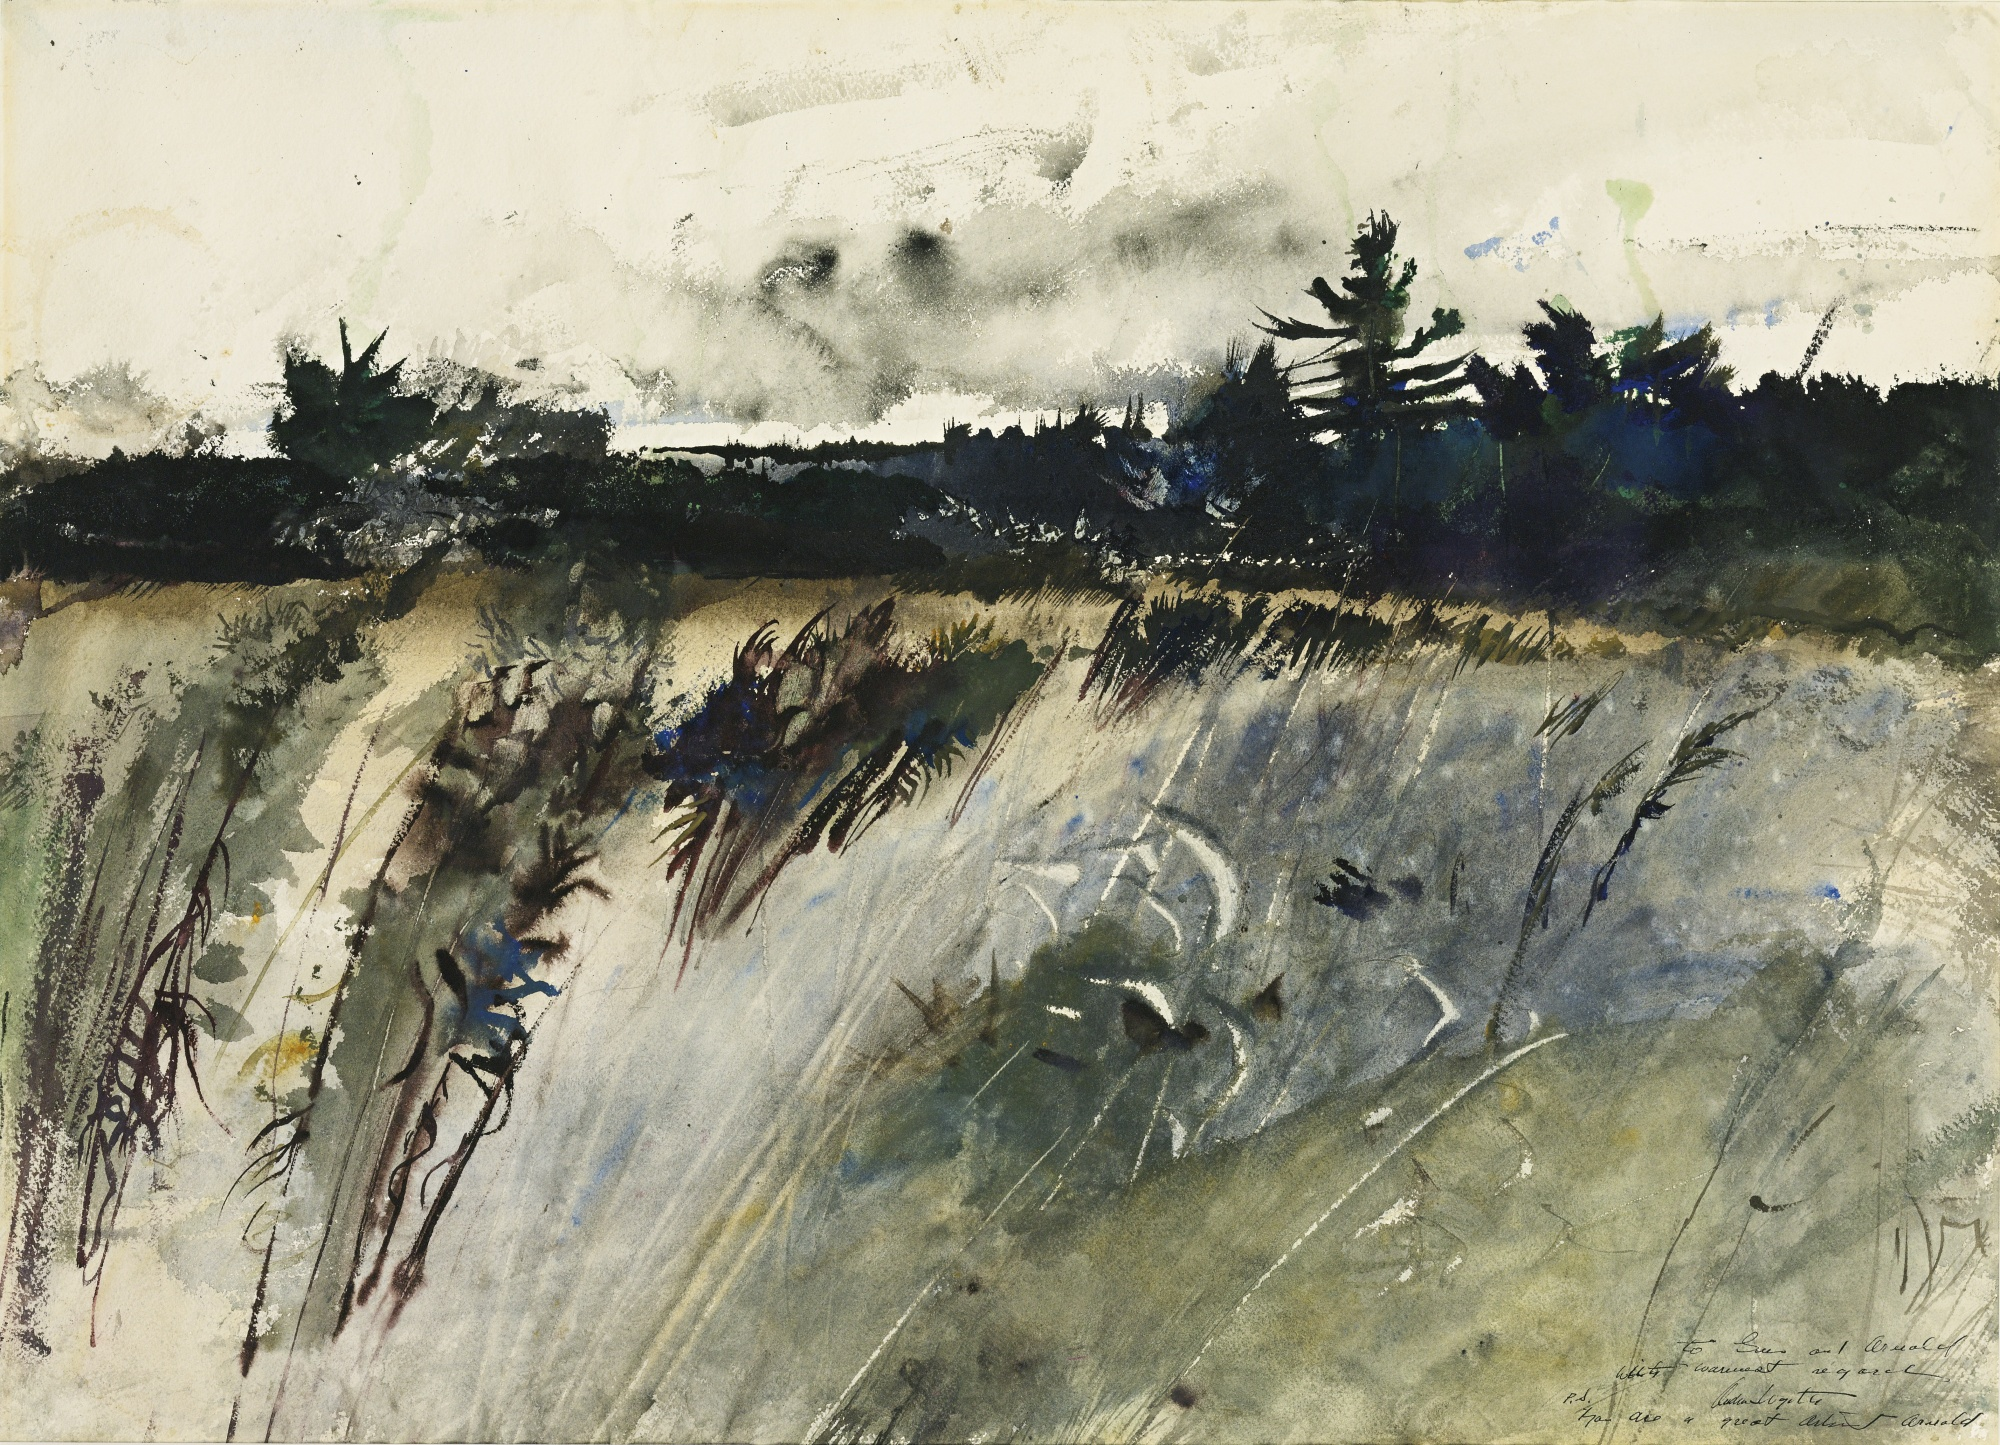 One of my favorite paintings by Andrew Wyeth - a true master of watercolor